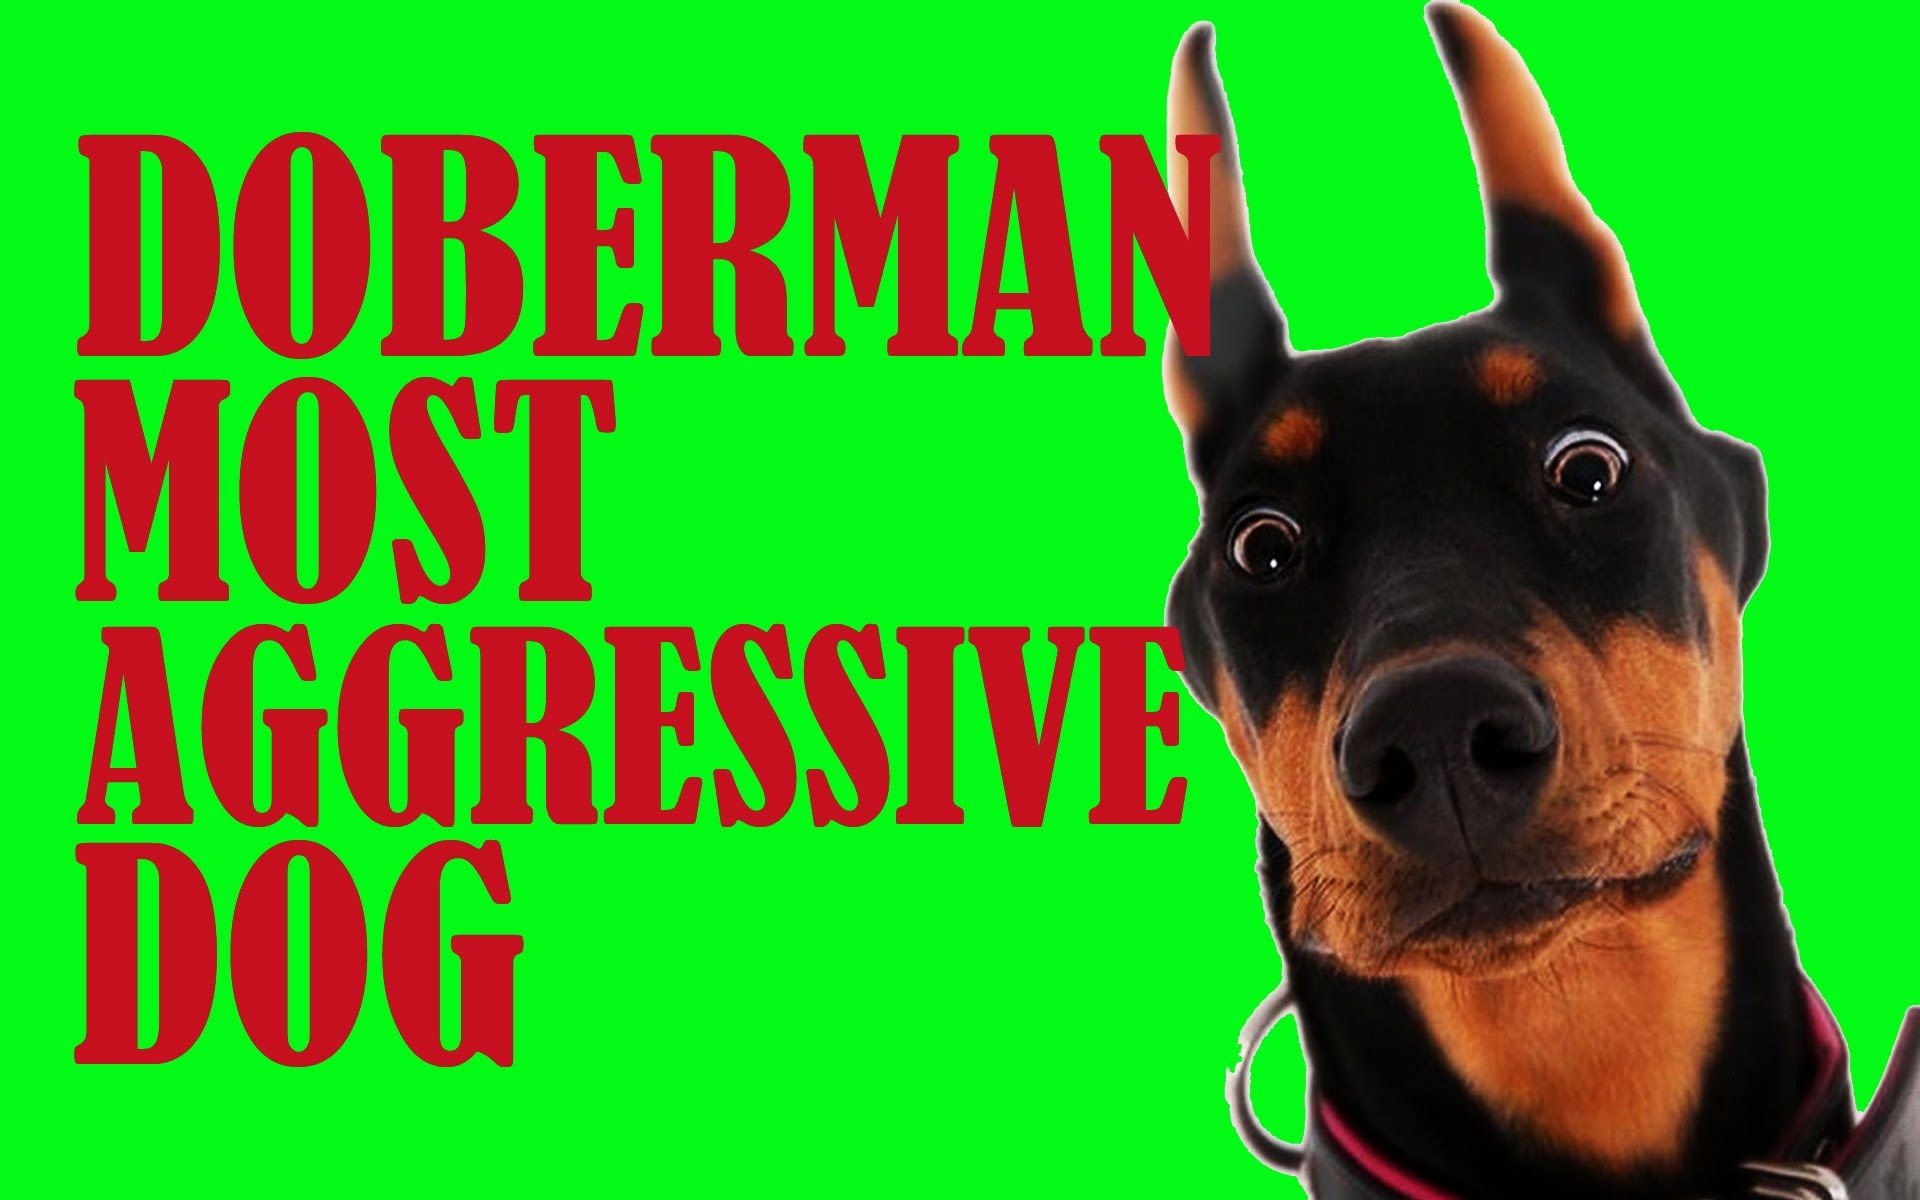 Watch The Funniest Videos On Youtube Doberman Most Aggressive